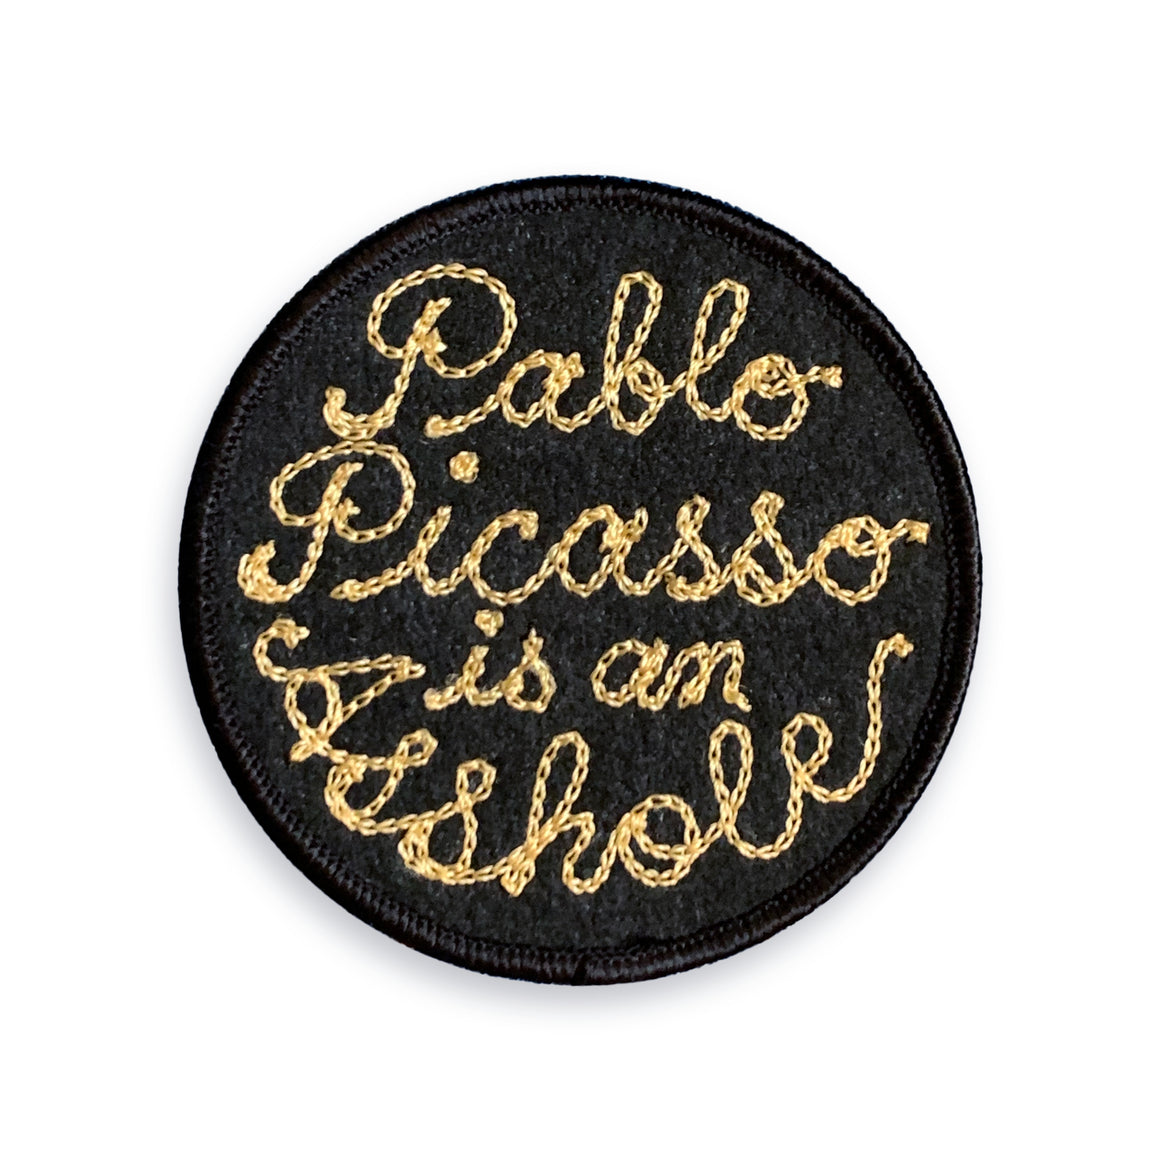 Pablo Picasso Chainstitch Patch